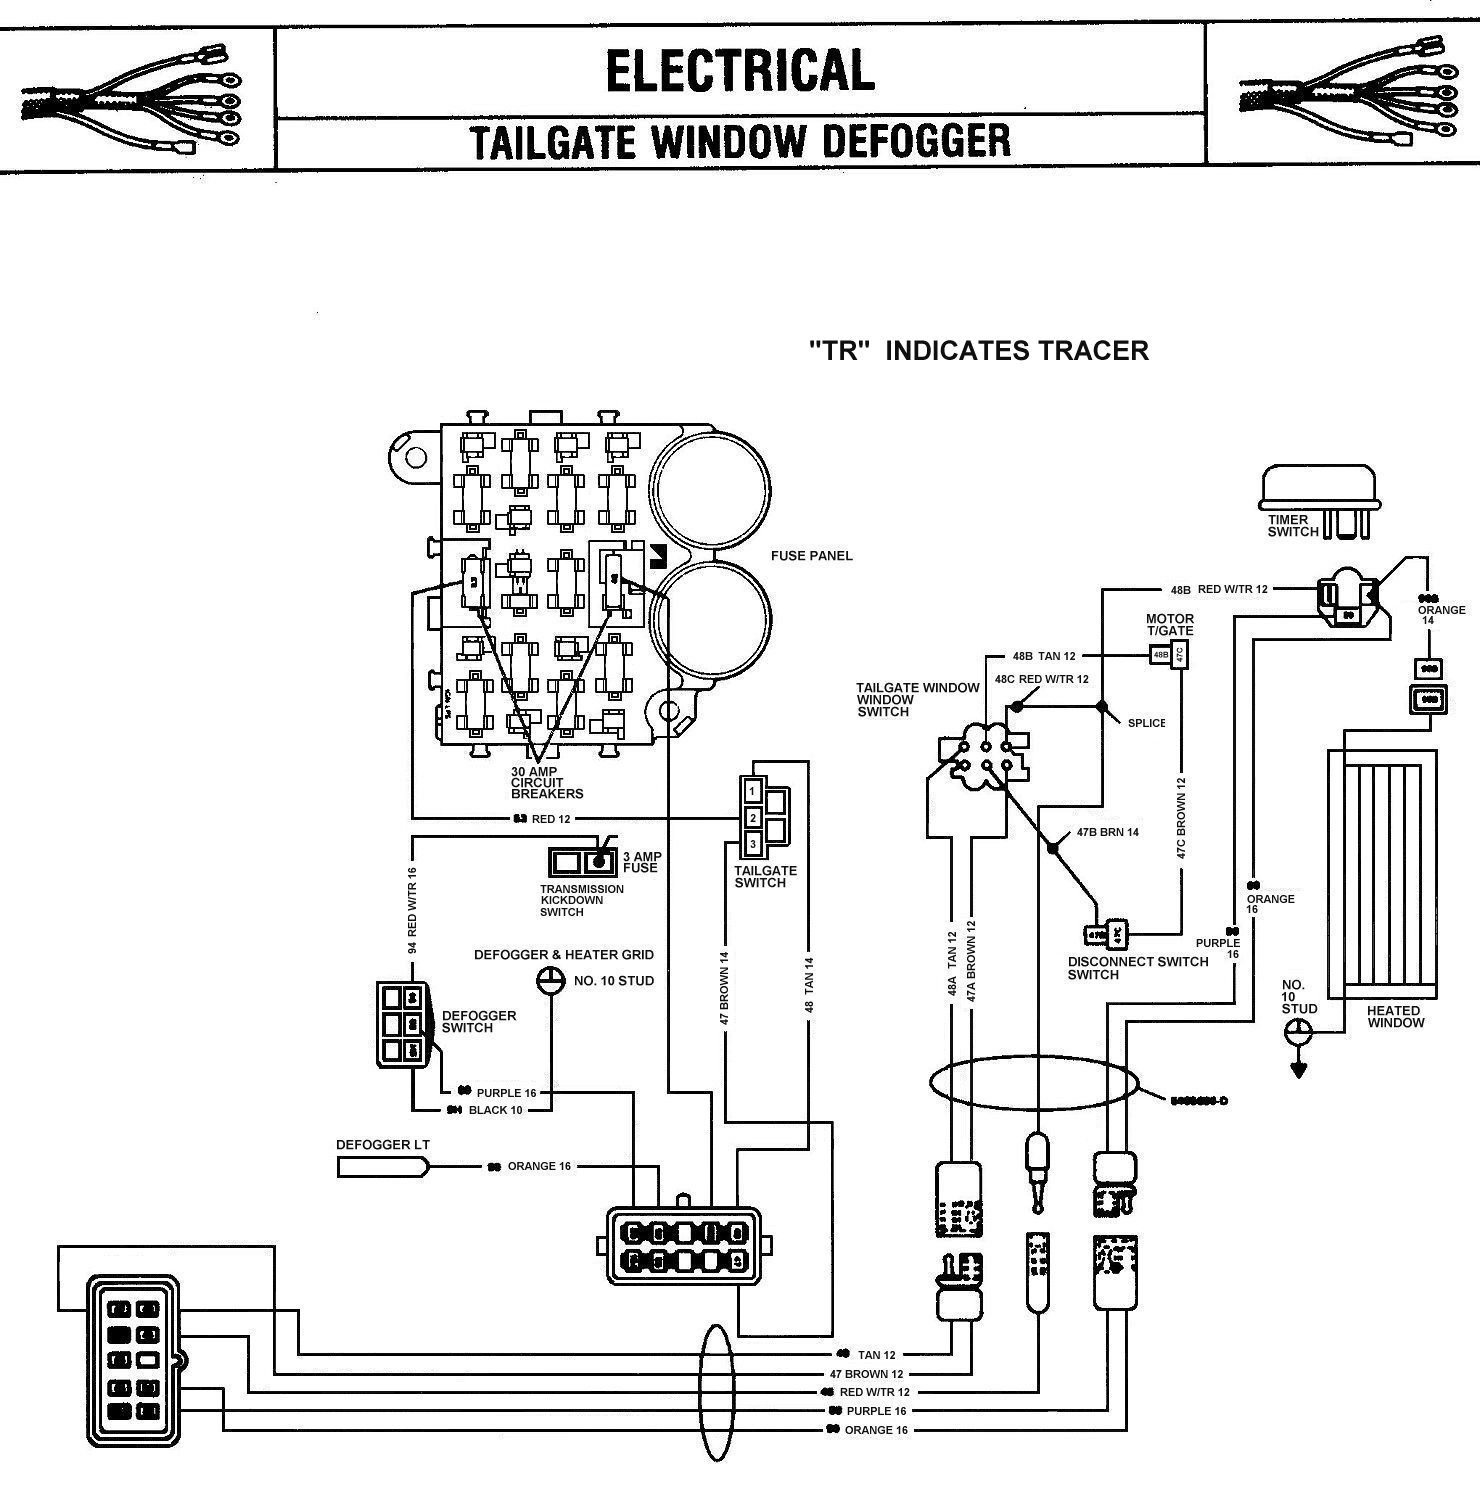 84 85_RearWindowDefroster wiring diagram 1978 jeep wagoneer electrical wiring diagrams for 1978 Corvette Wiring Diagram at webbmarketing.co